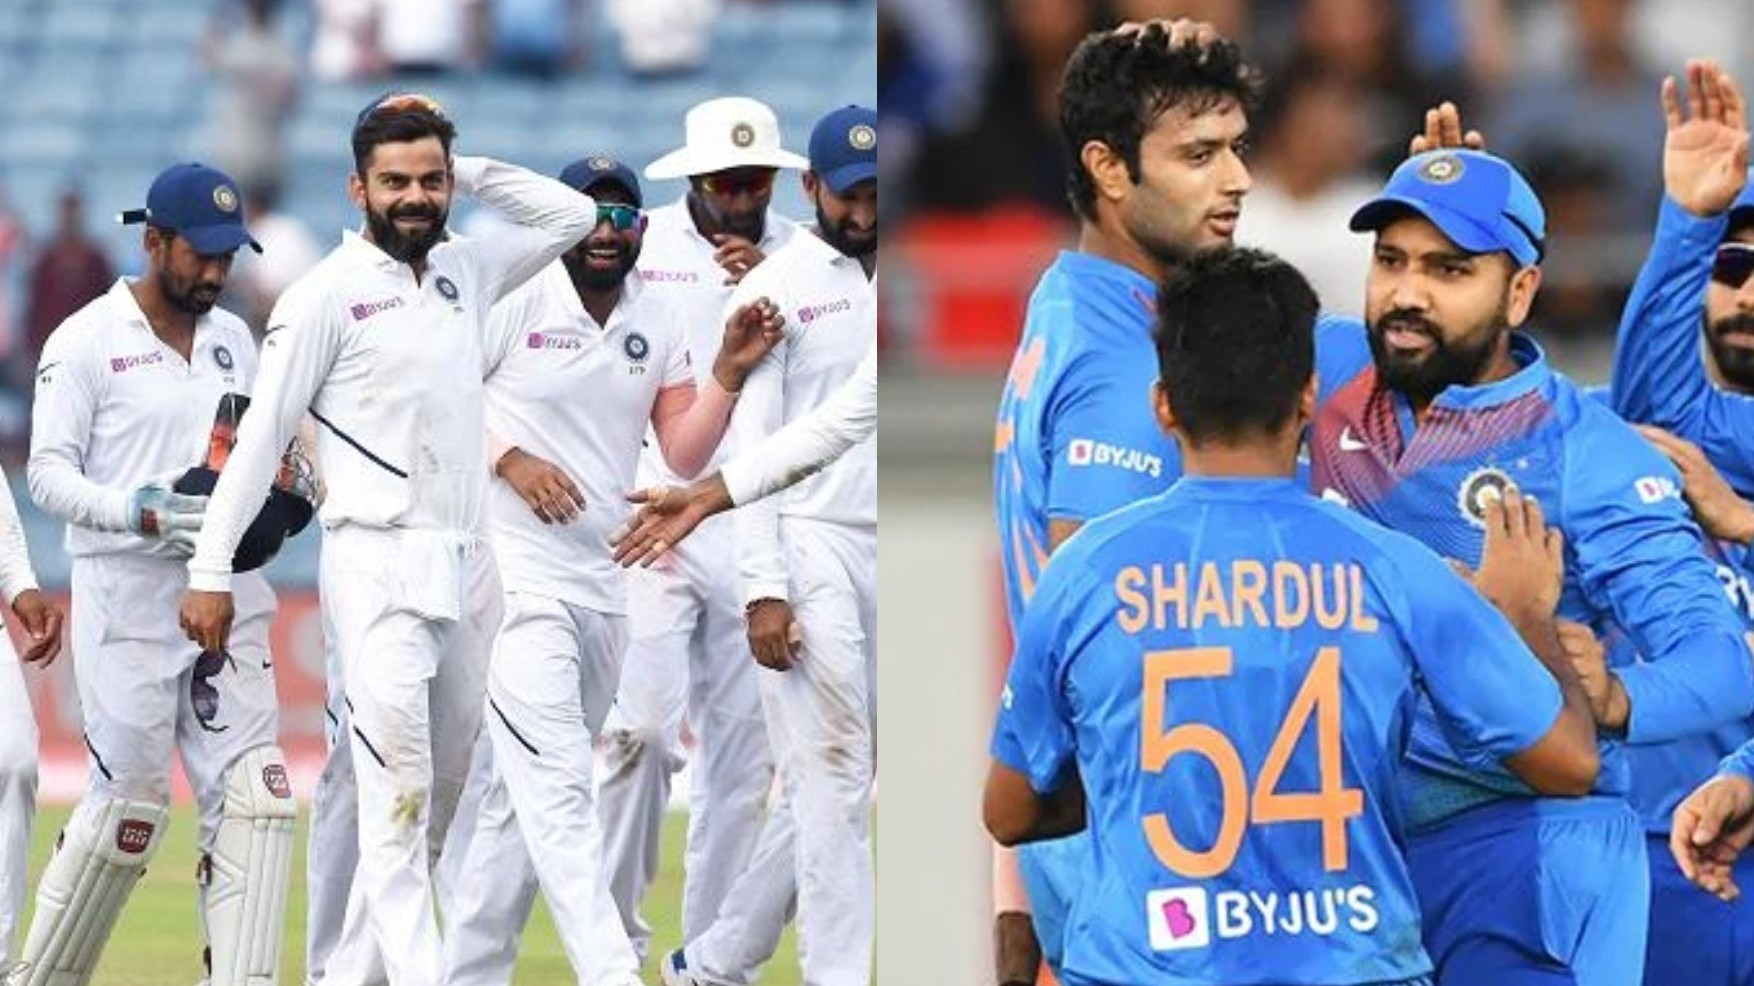 India's Predicted Test and T20I XI, if BCCI decides to field two teams simultaneously